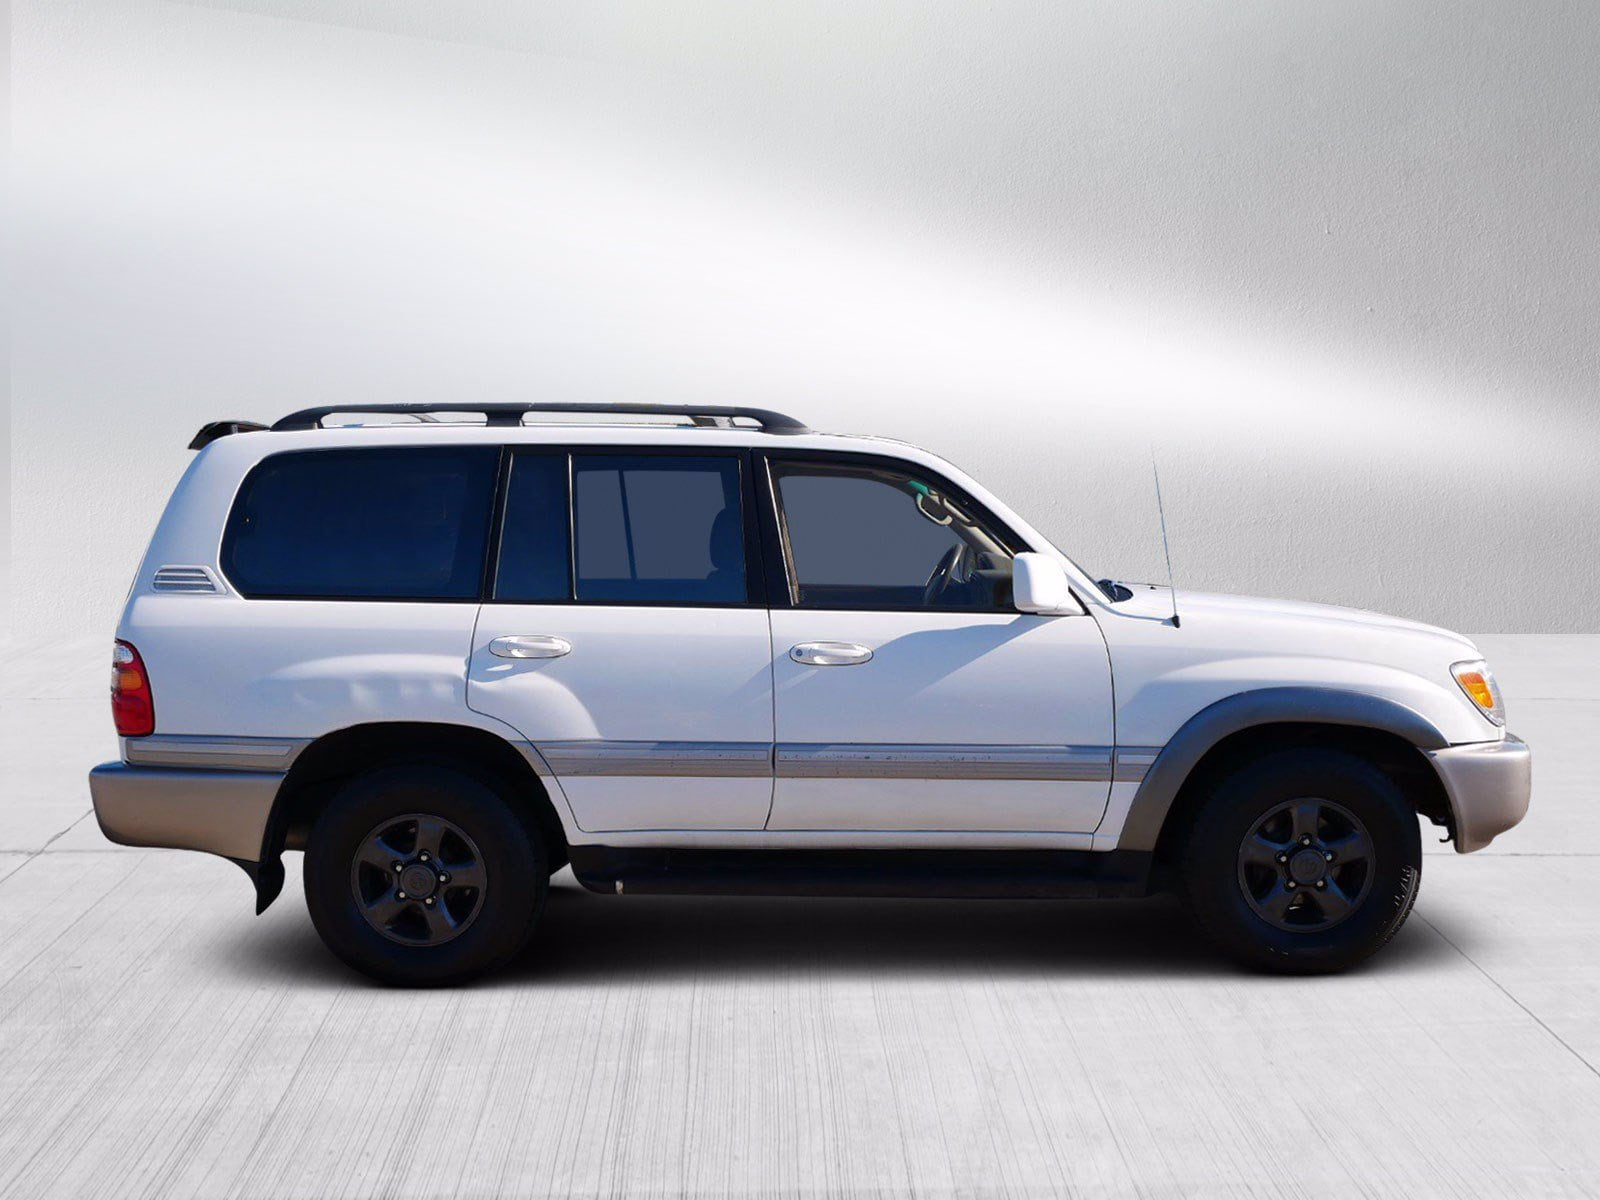 Used 1998 Toyota Land Cruiser  with VIN JT3HT05J5W0007597 for sale in Bloomington, Minnesota